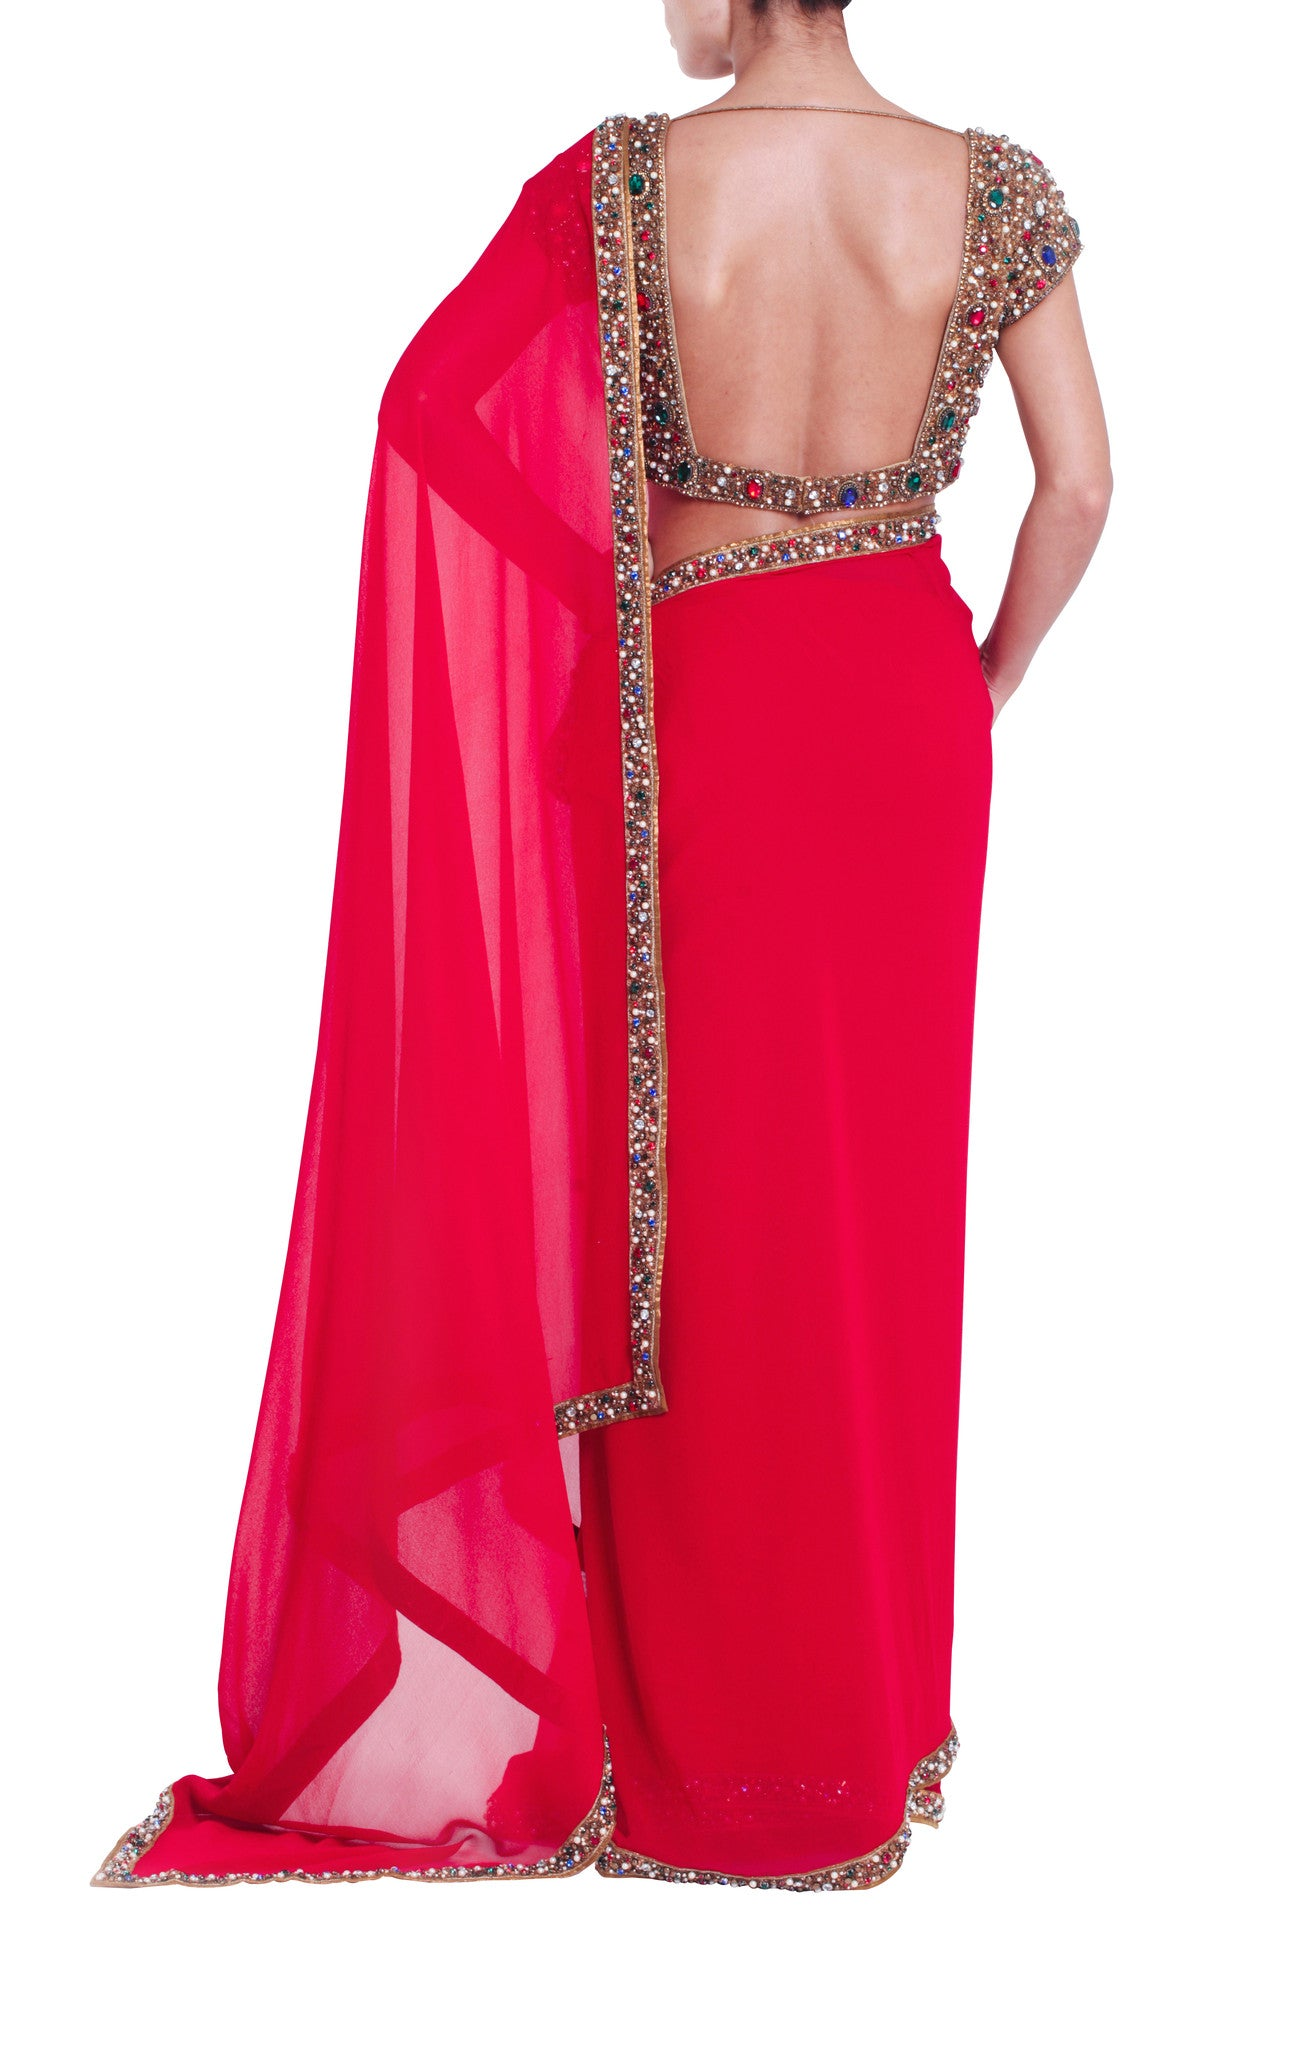 Red Silk Jewelled Saree Seema Khan Back